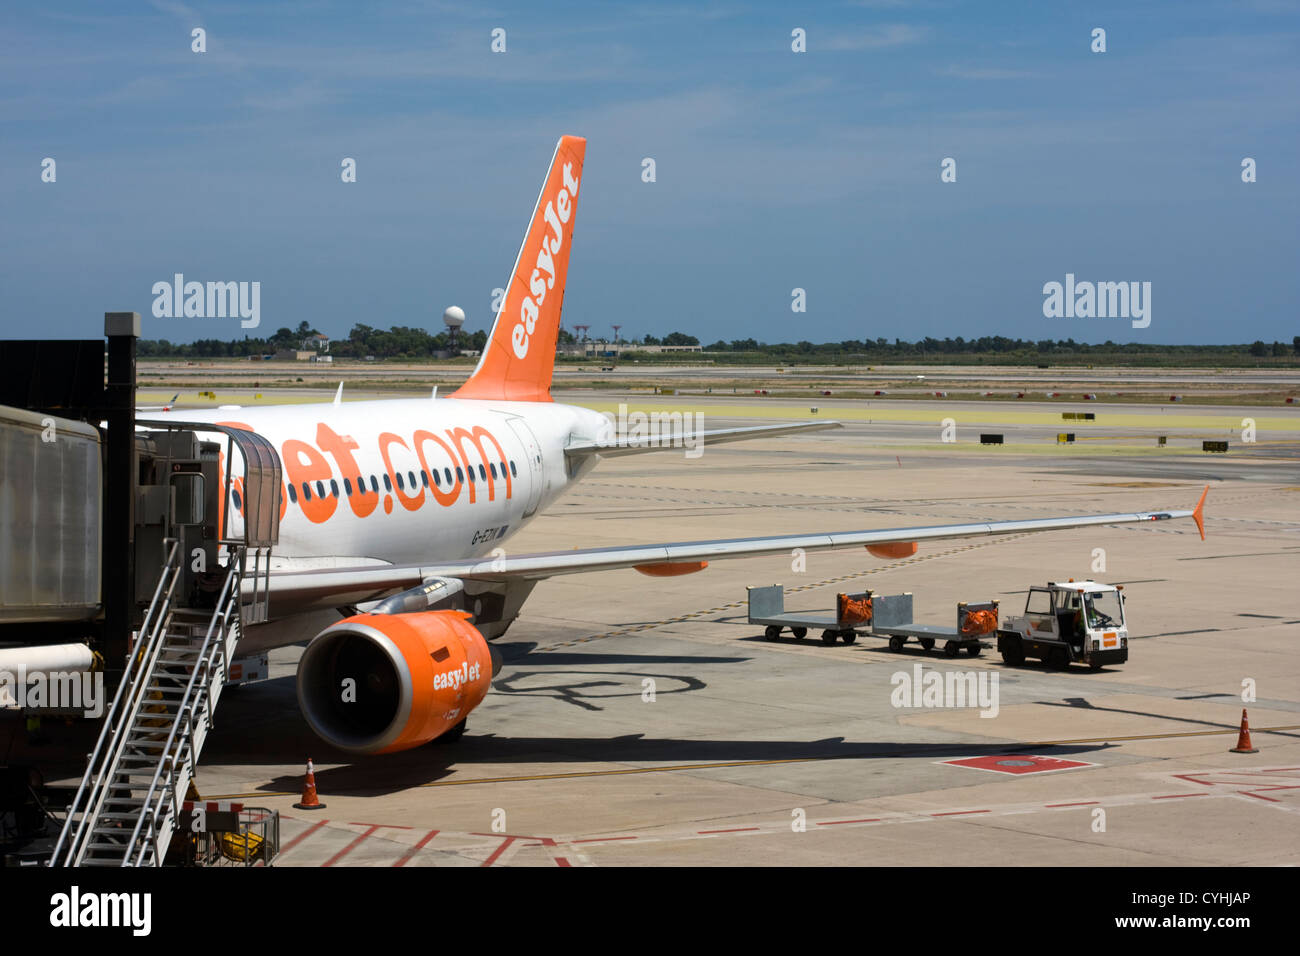 Passenger Airplane of Easy Jet at Barcelona El Prat Airport. - Stock Image